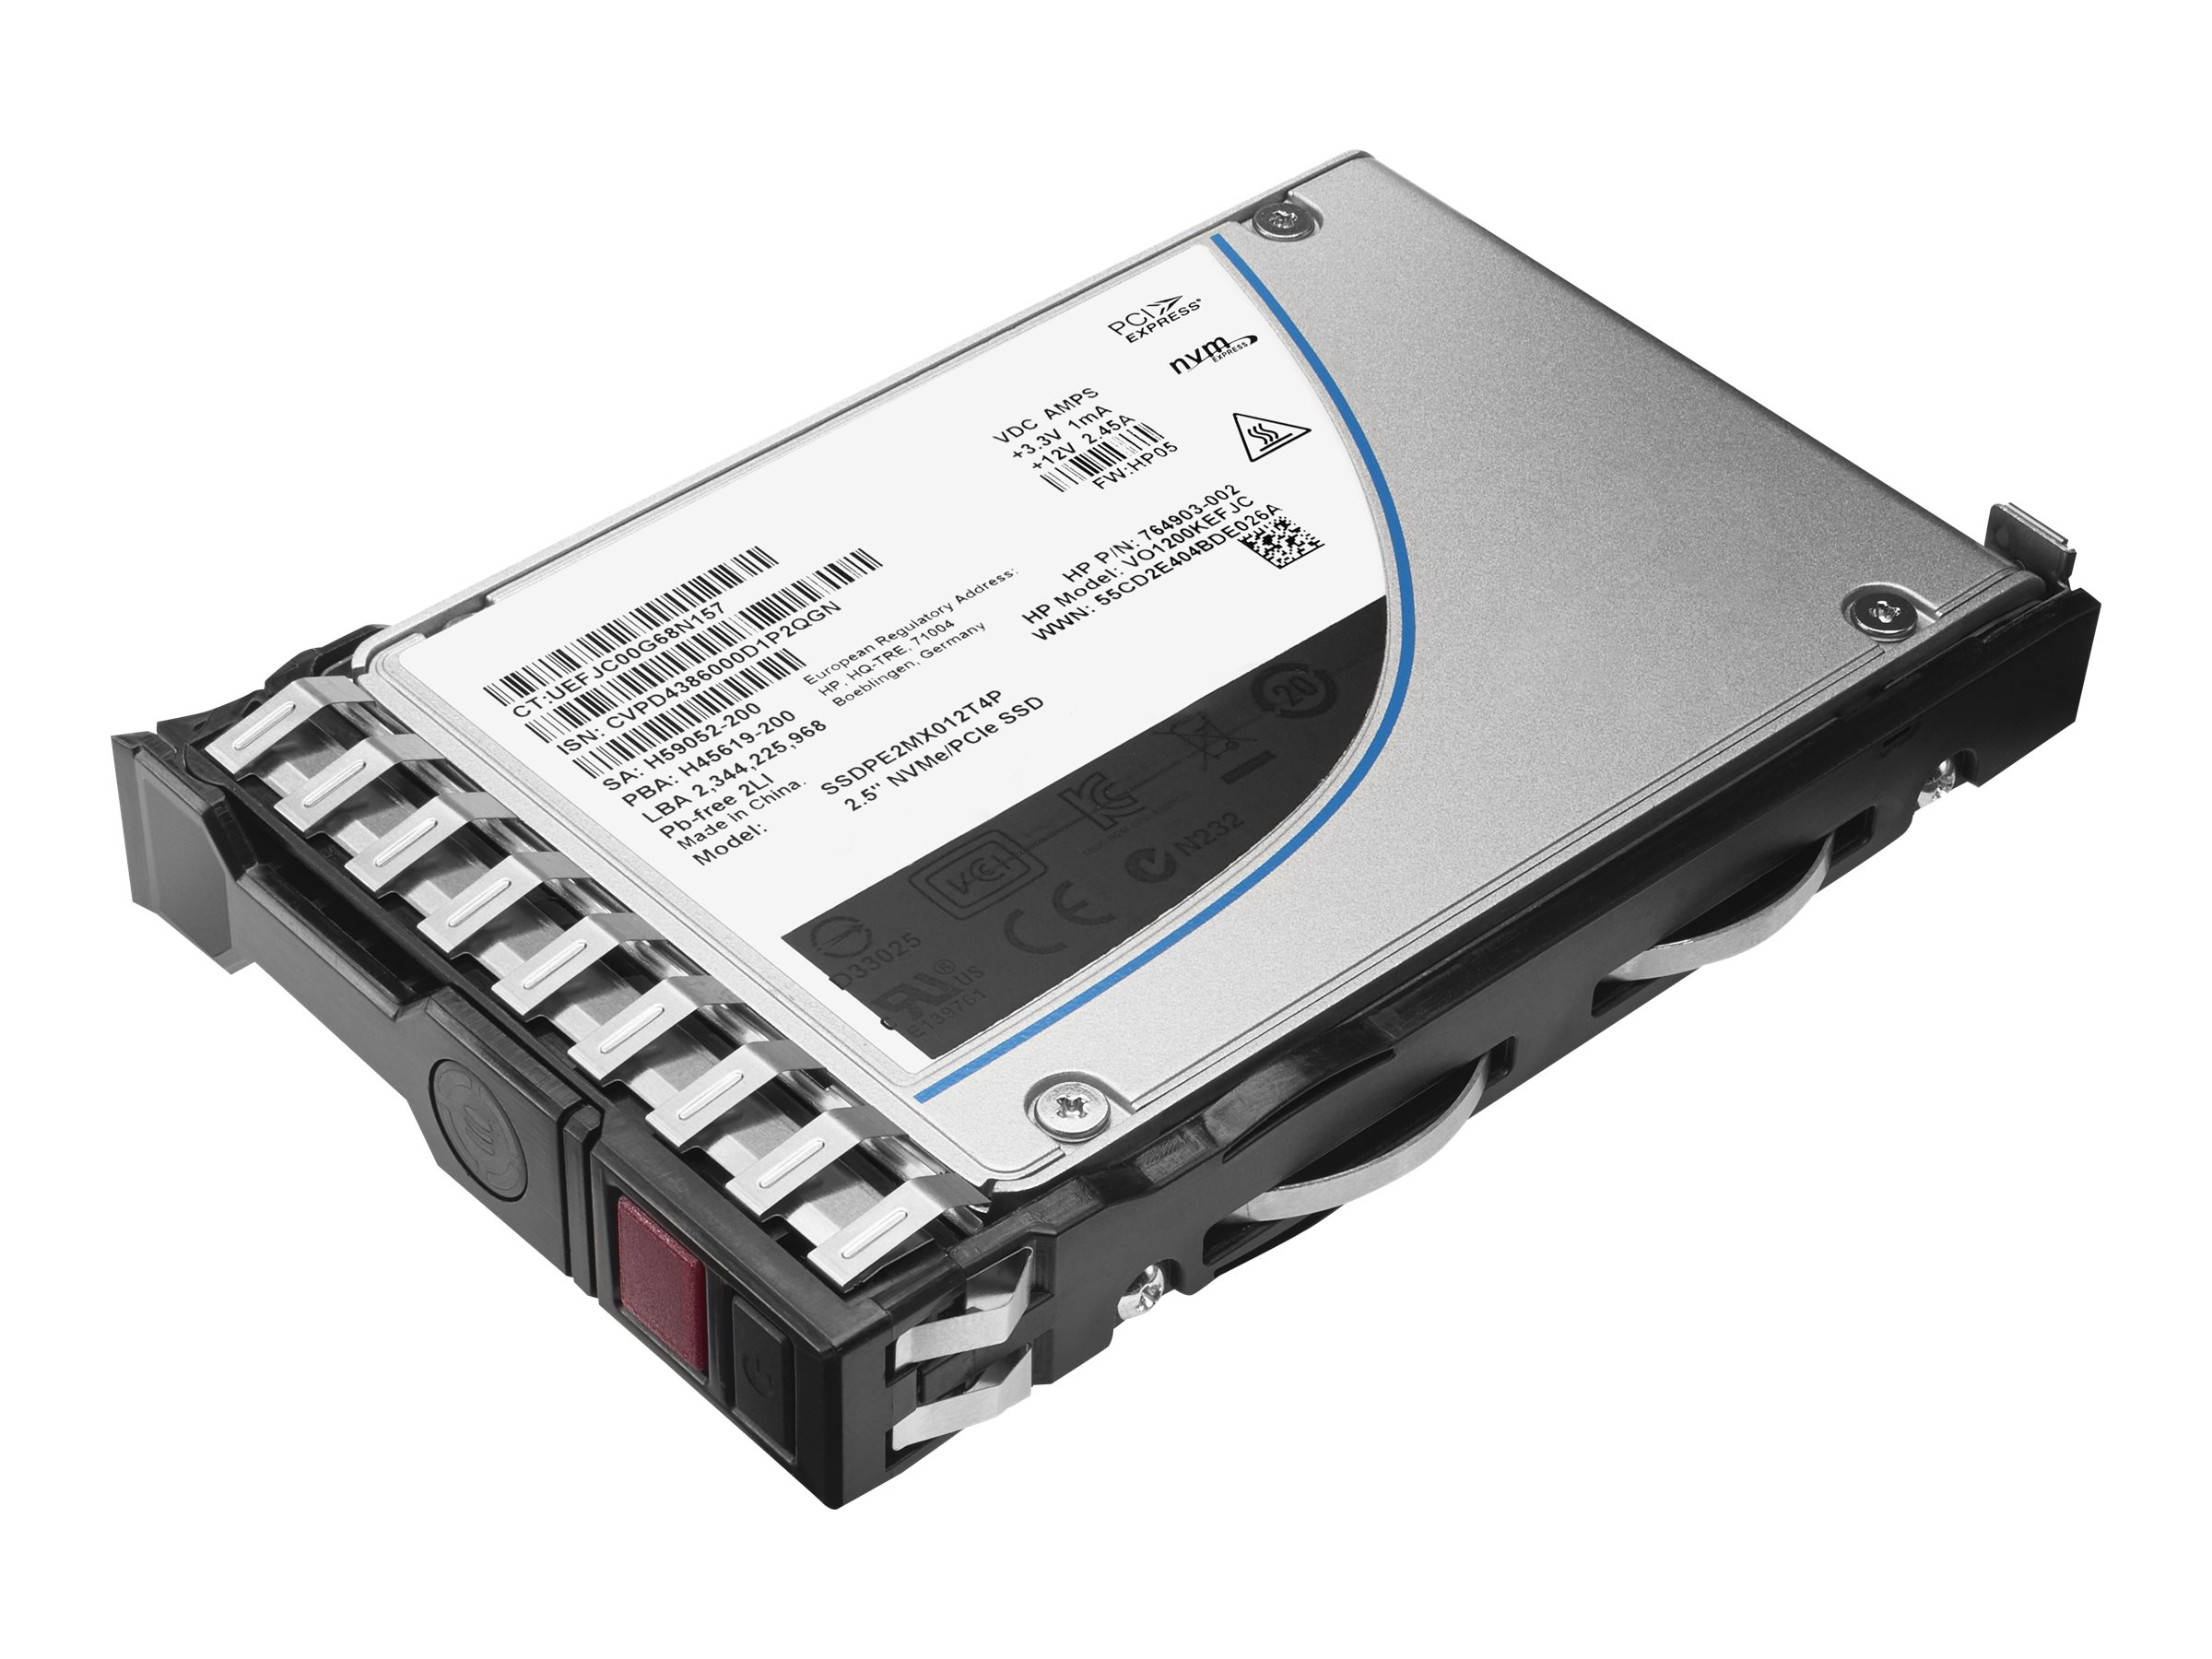 HPE 800GB SAS 12Gb s Write Intensive SFF 2.5 Hot Plug Solid State Drive for Gen8 Servers & Beyond